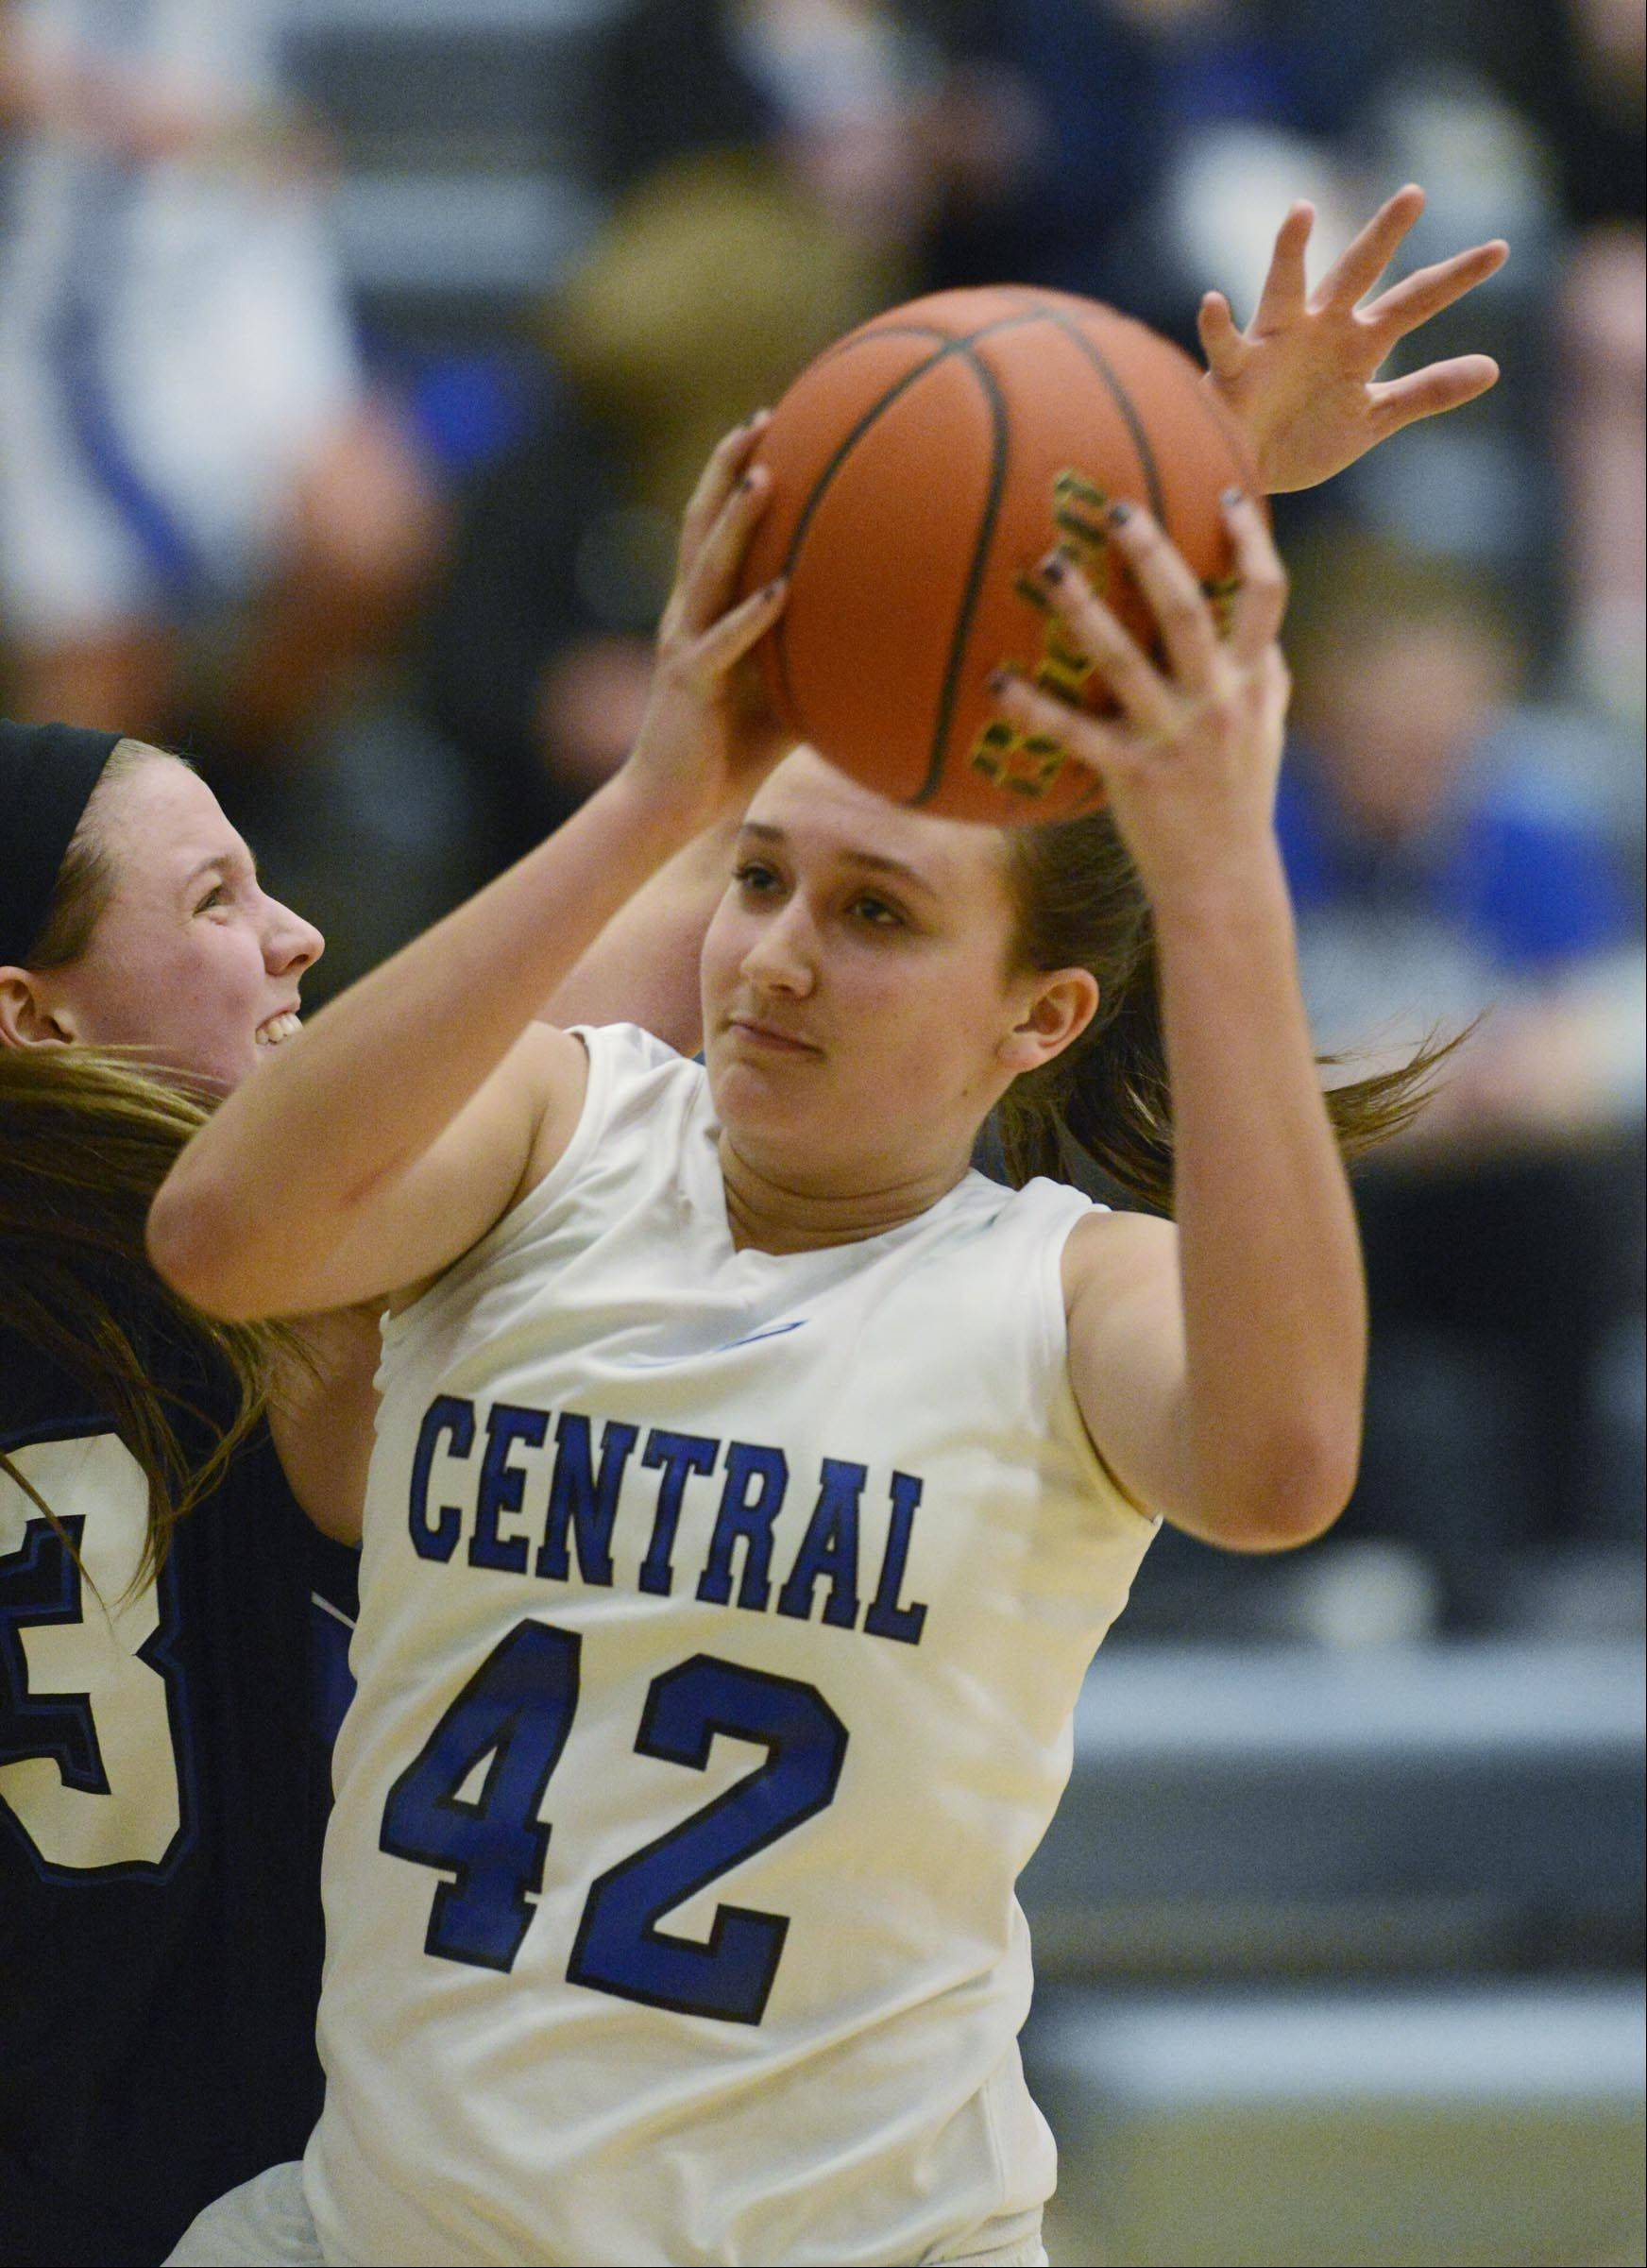 Burlington Central ties school record for wins